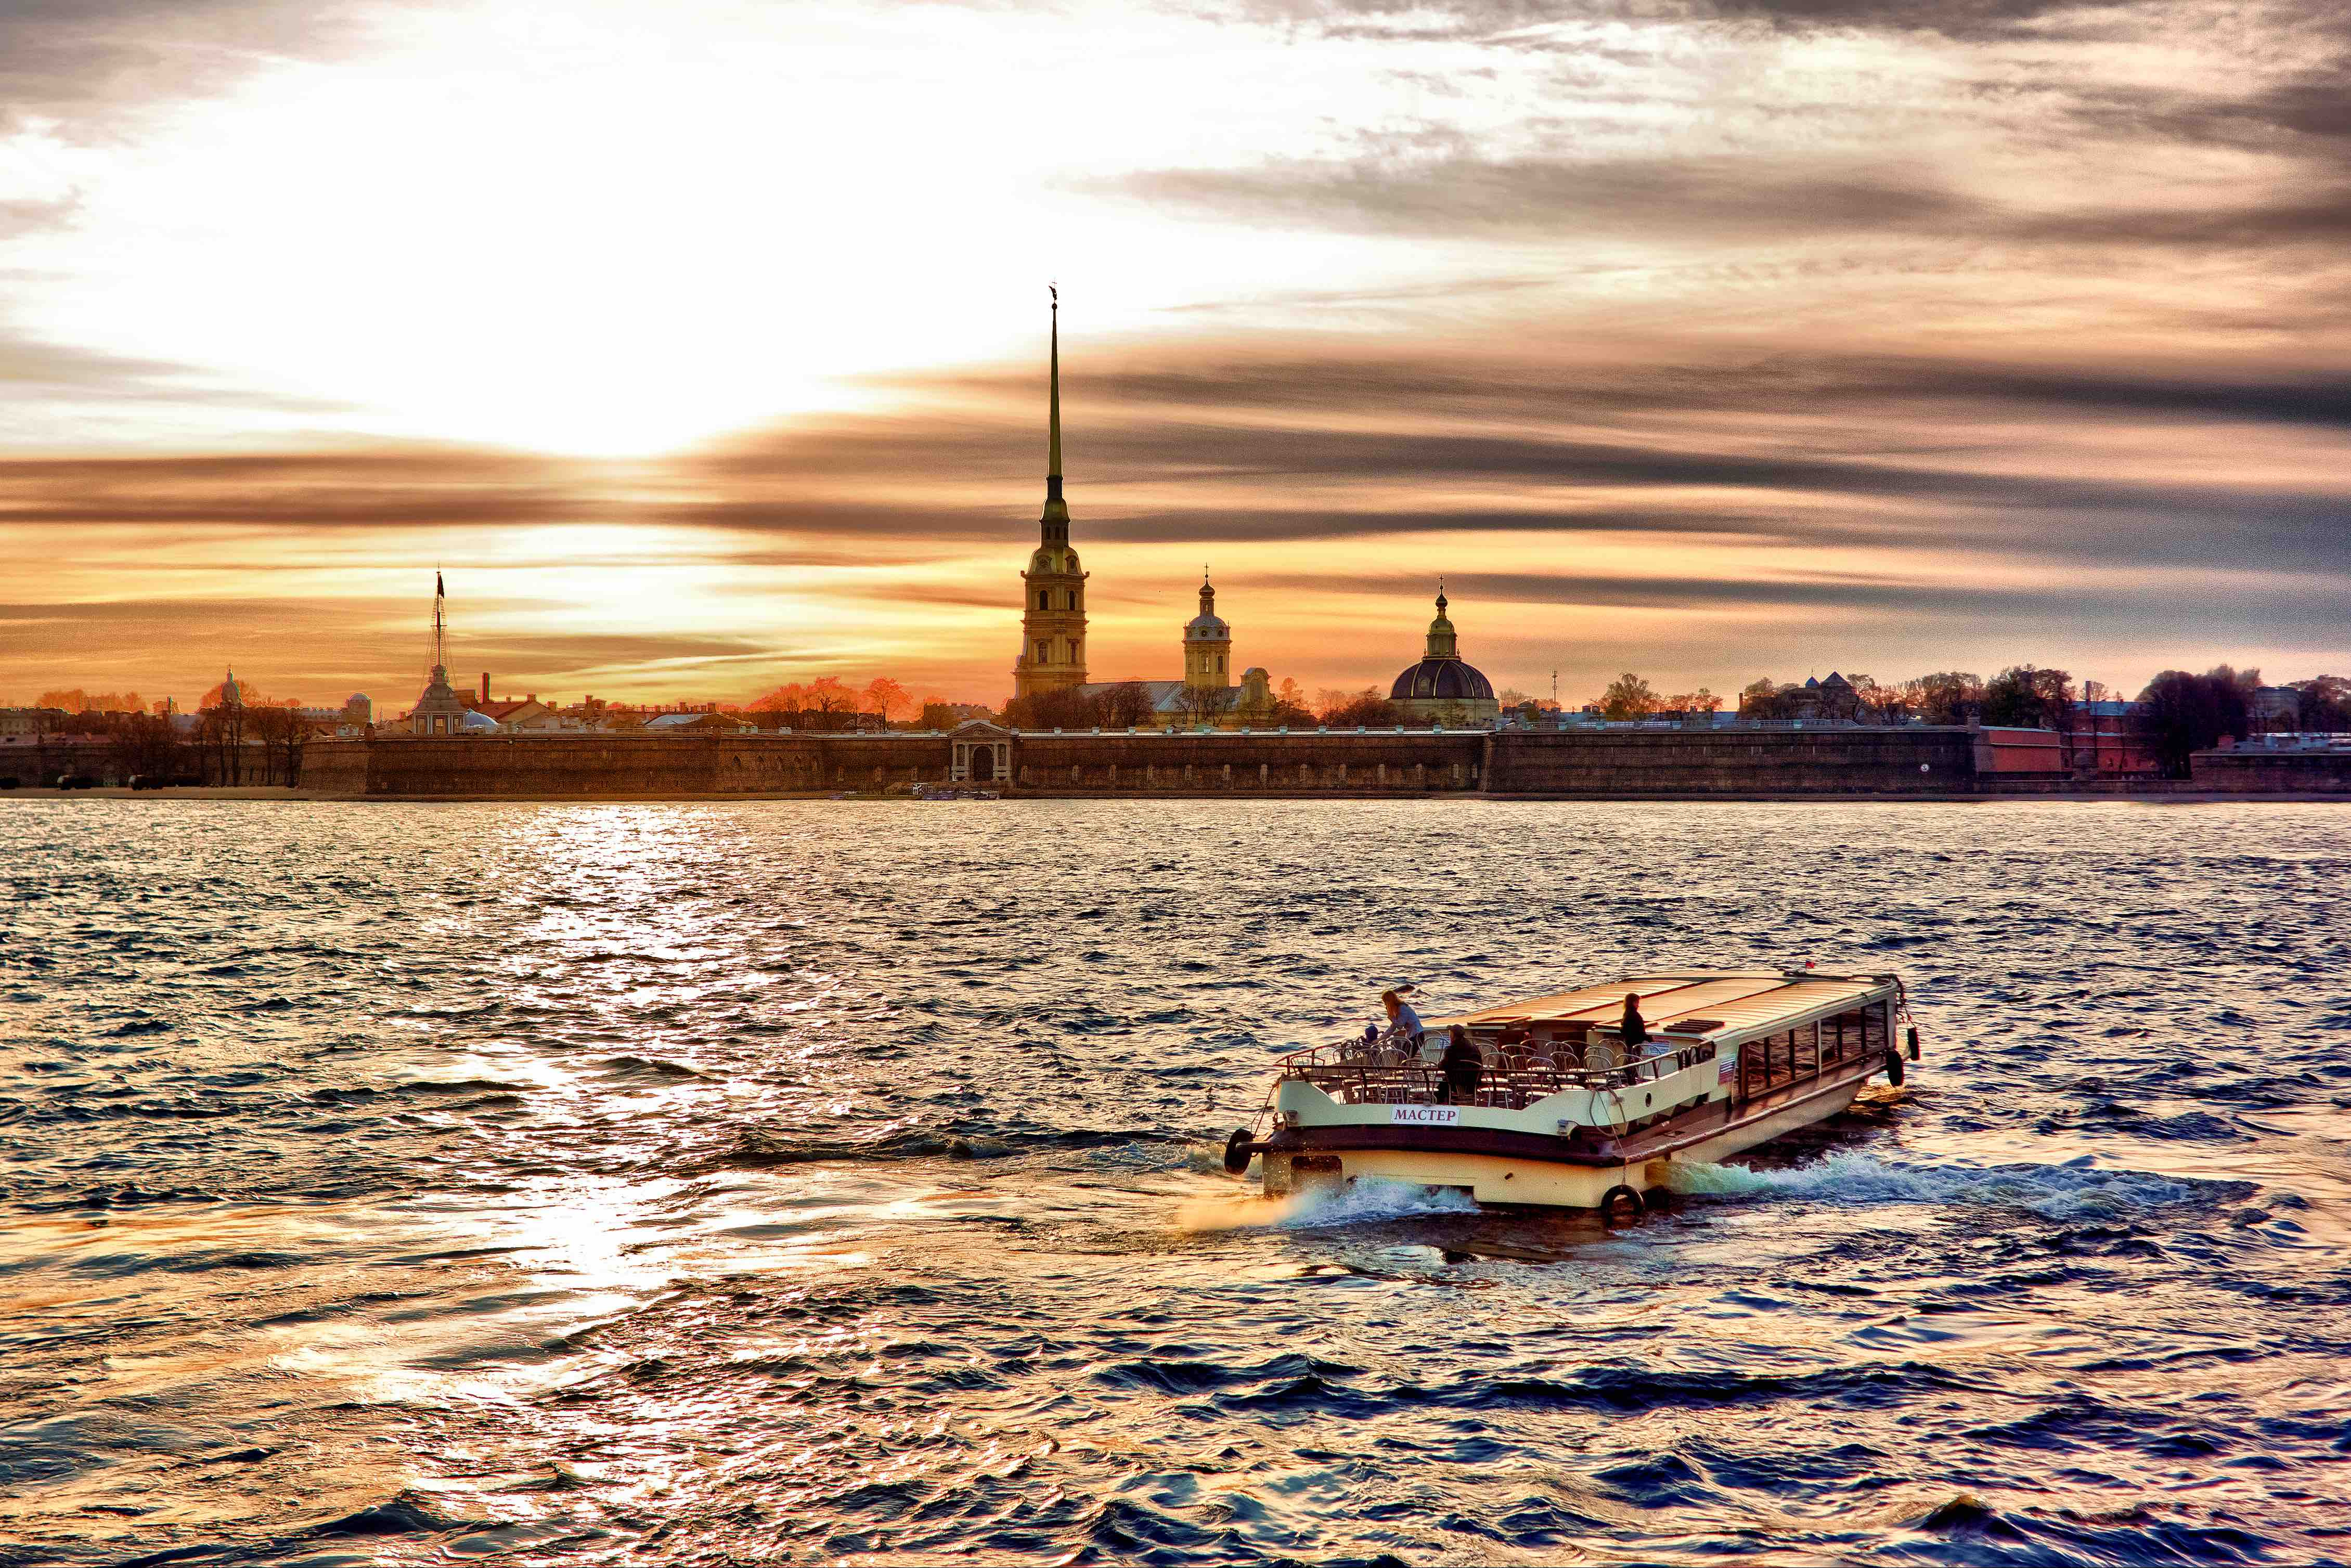 A gloriously golden sunset on the Neva River in Saint Petersburg.